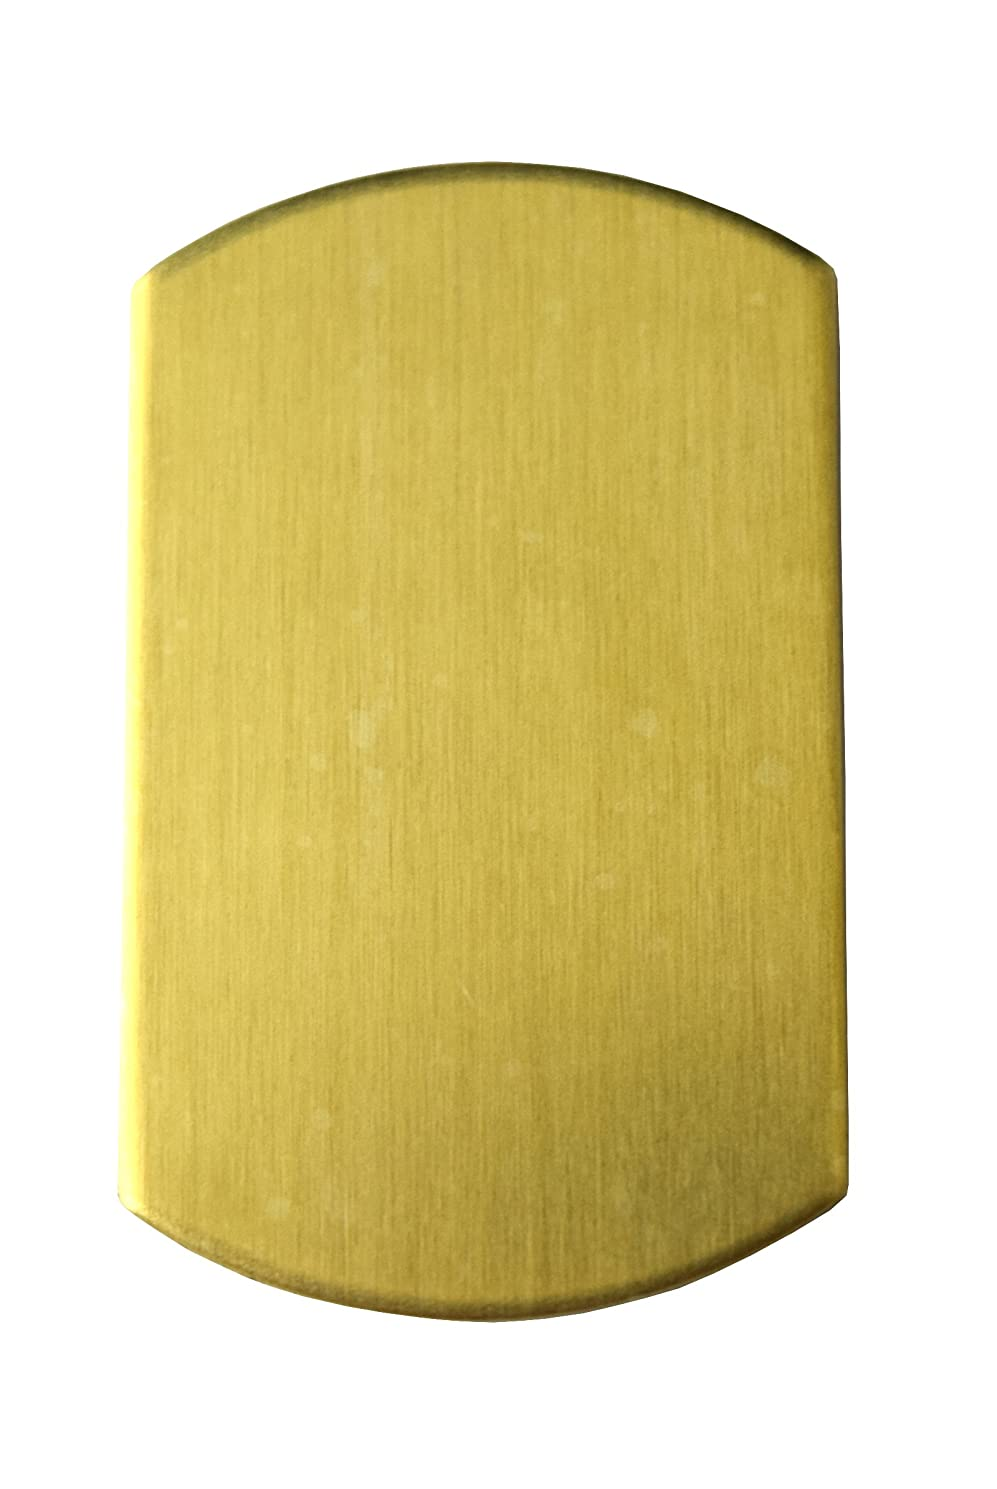 RMP Stamping Blanks, 3/4 Inch x 1-1/4 Inch Dog Tag, Brass 0.032 Inch (20 Ga.) PVC Coating on Both Sides - 20 Pack